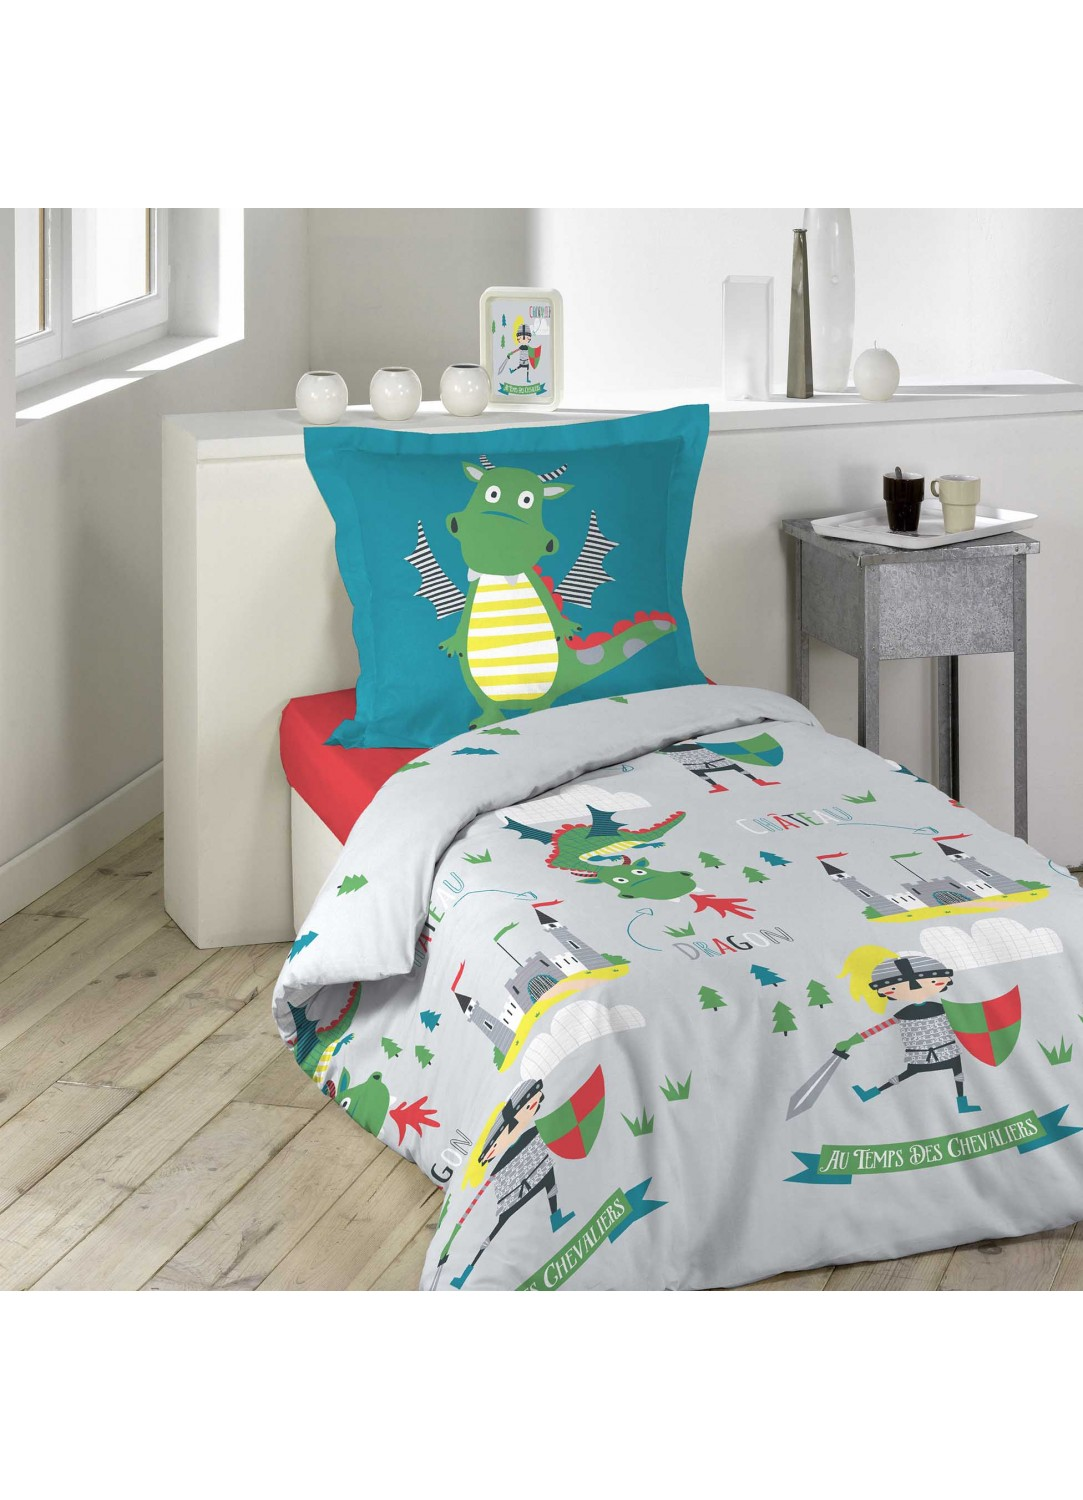 parure de lit enfant au temps des chevaliers multicolors homemaison vente en ligne. Black Bedroom Furniture Sets. Home Design Ideas